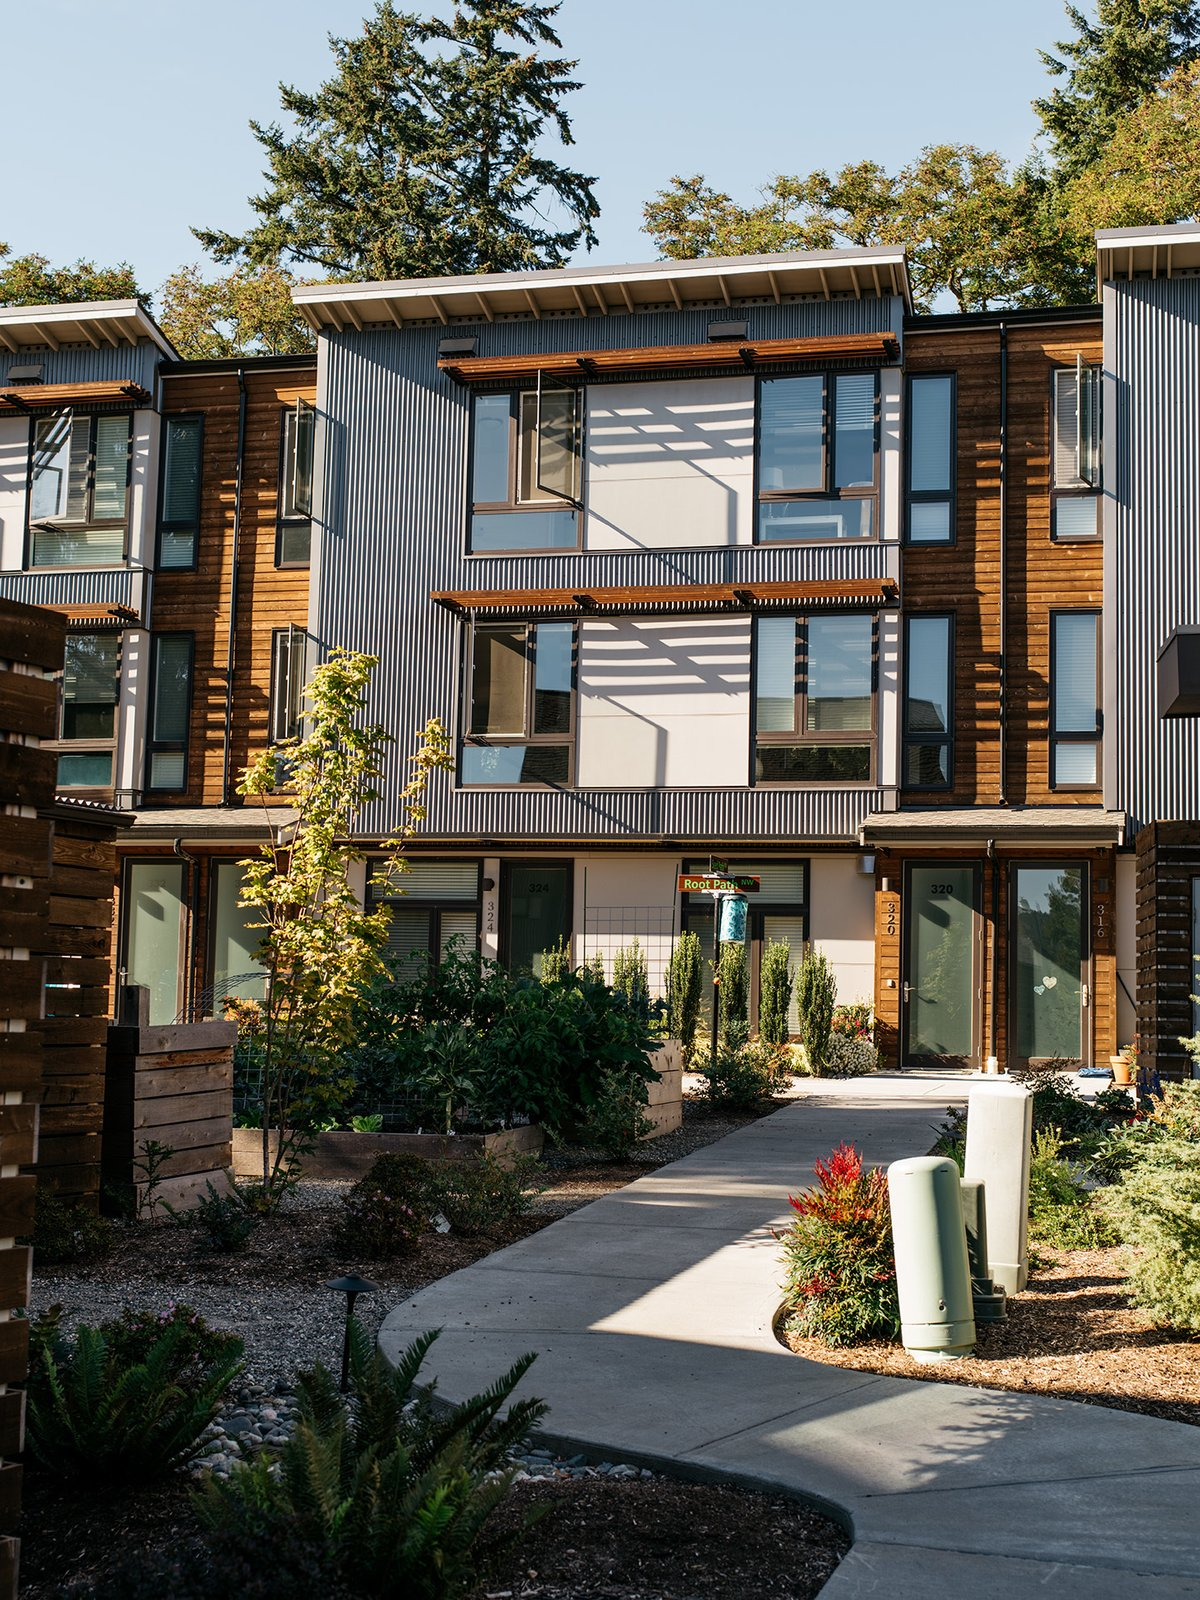 Exterior and House Building Type Phase one consists of 23 houses and two apartment buildings with 10 units each. The next two phases, The Grove and The Park, will offer a mix of town houses and condominium apartments. Some critics see these more conventional schemes as diluted versions of the original concept.  Photo 9 of 15 in It Takes a Village